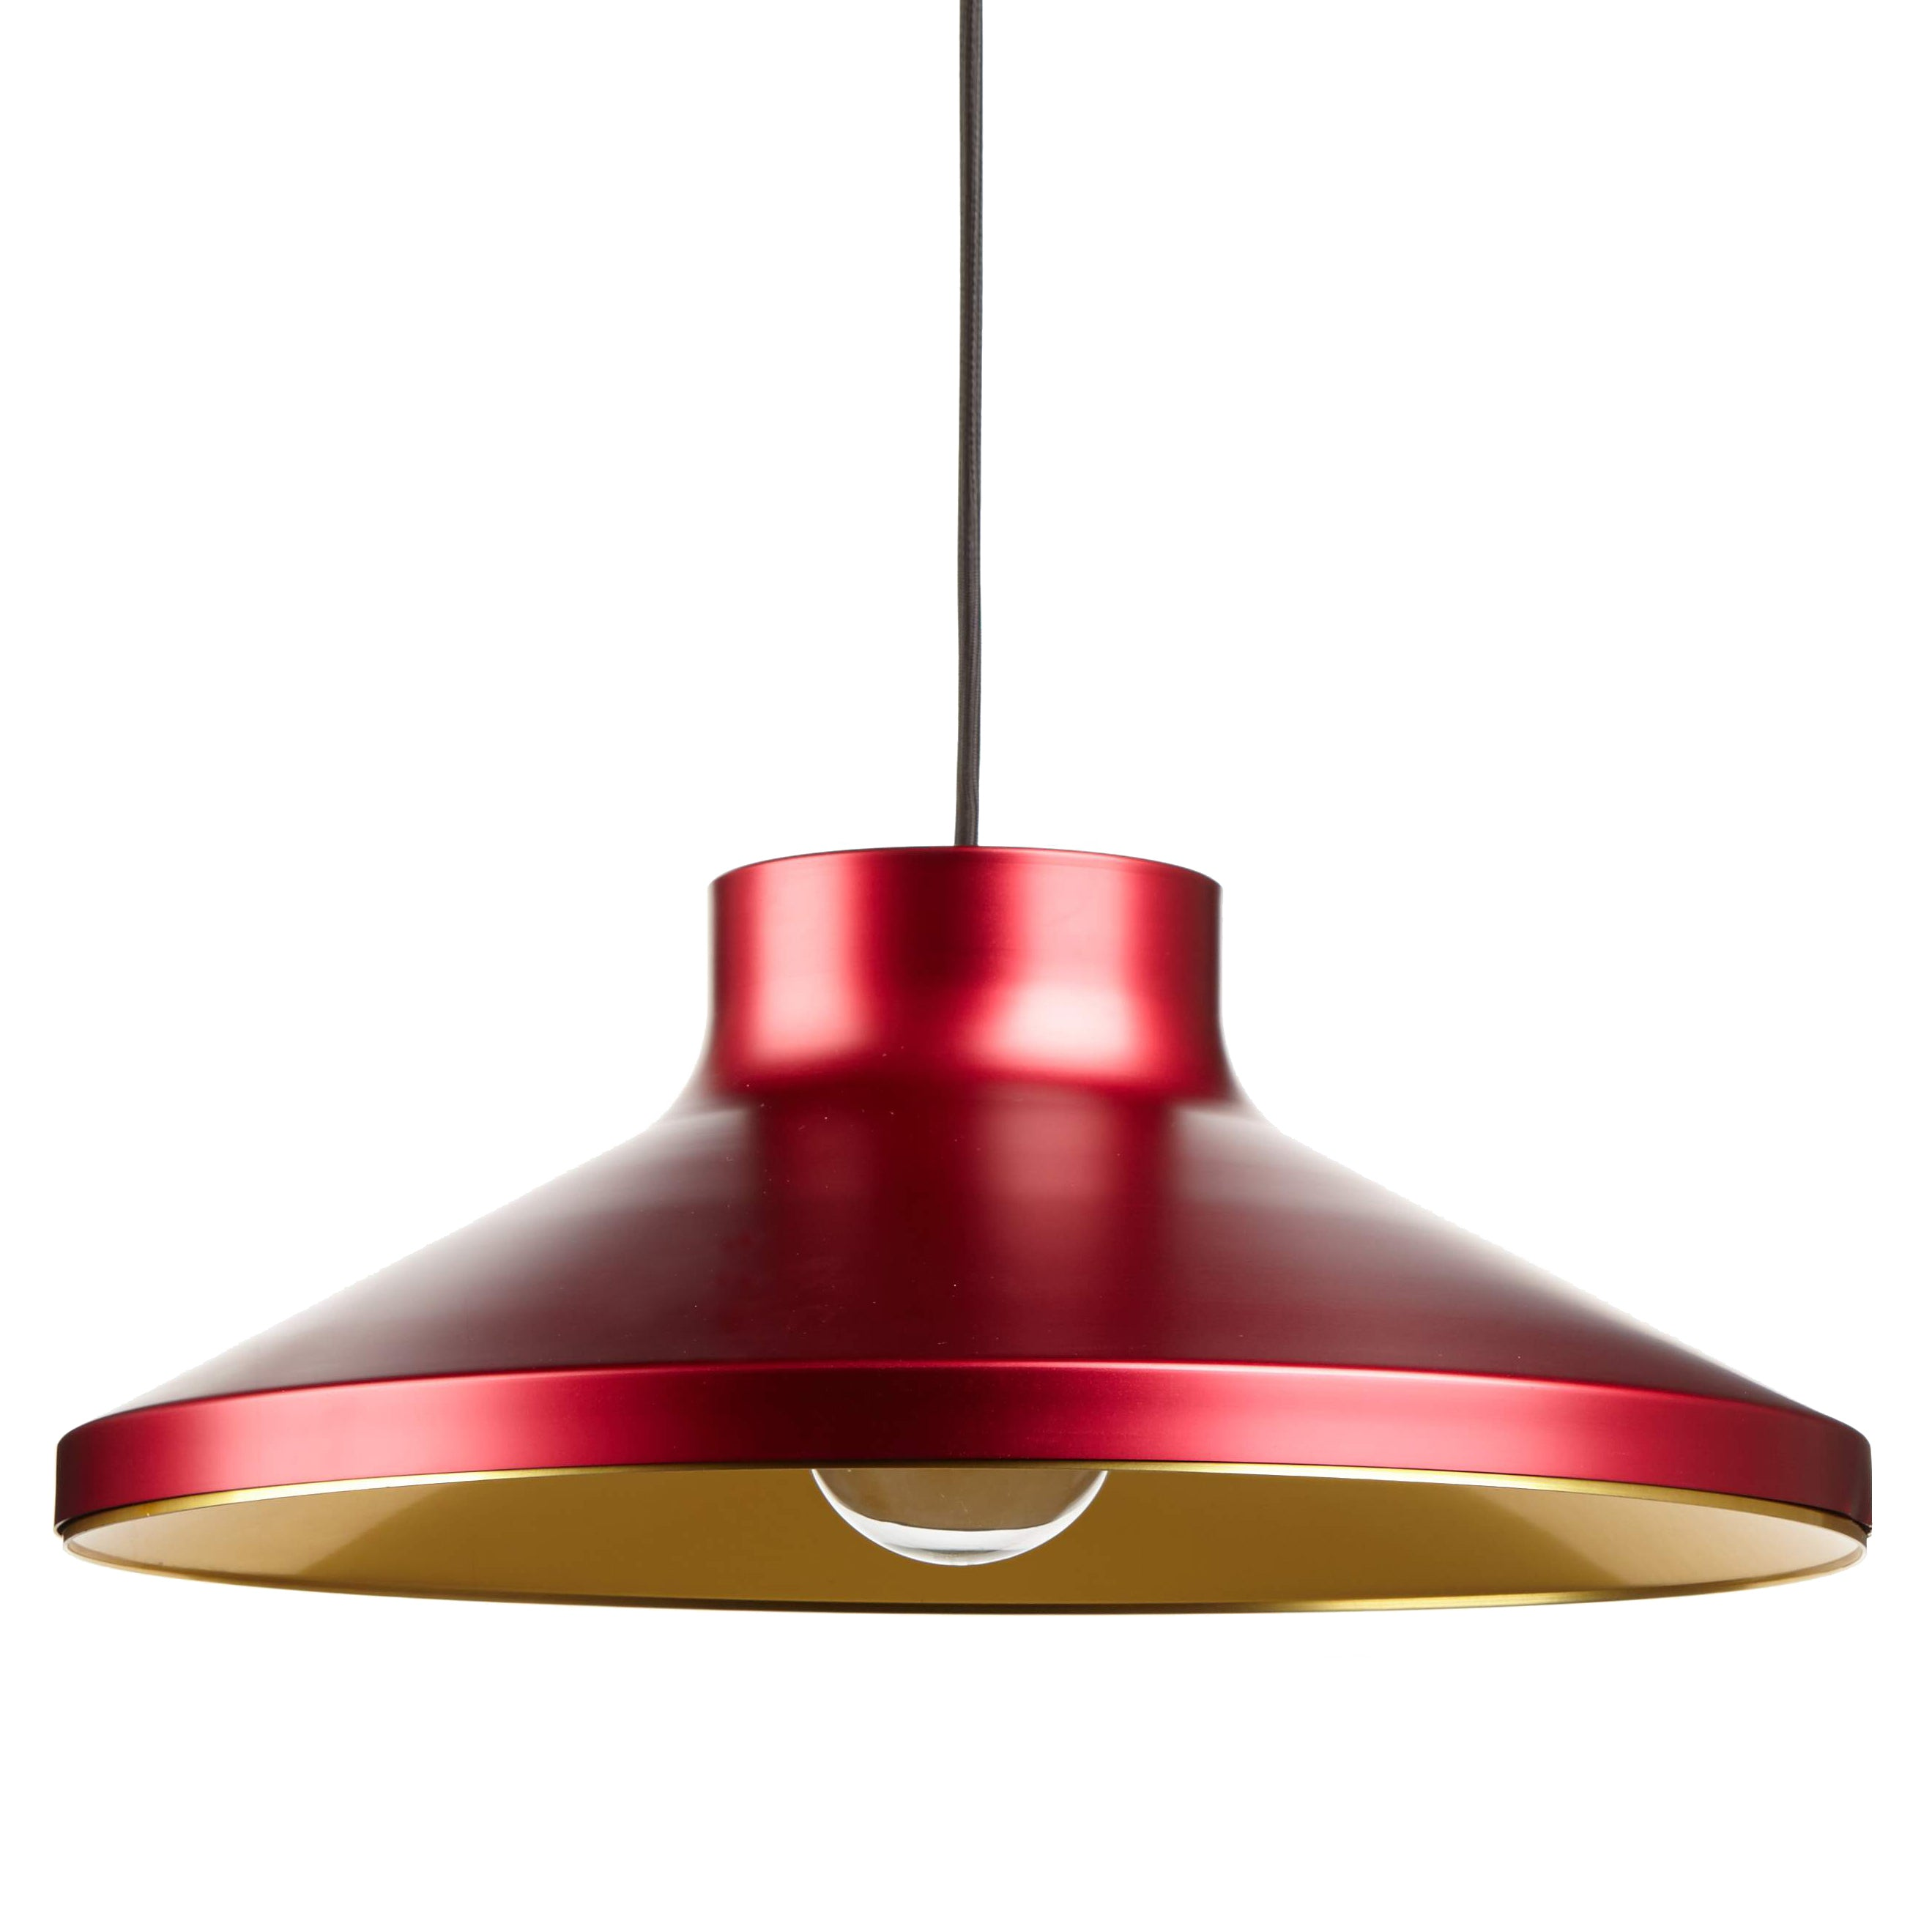 VGP1 Pendant Light: Red + Brass